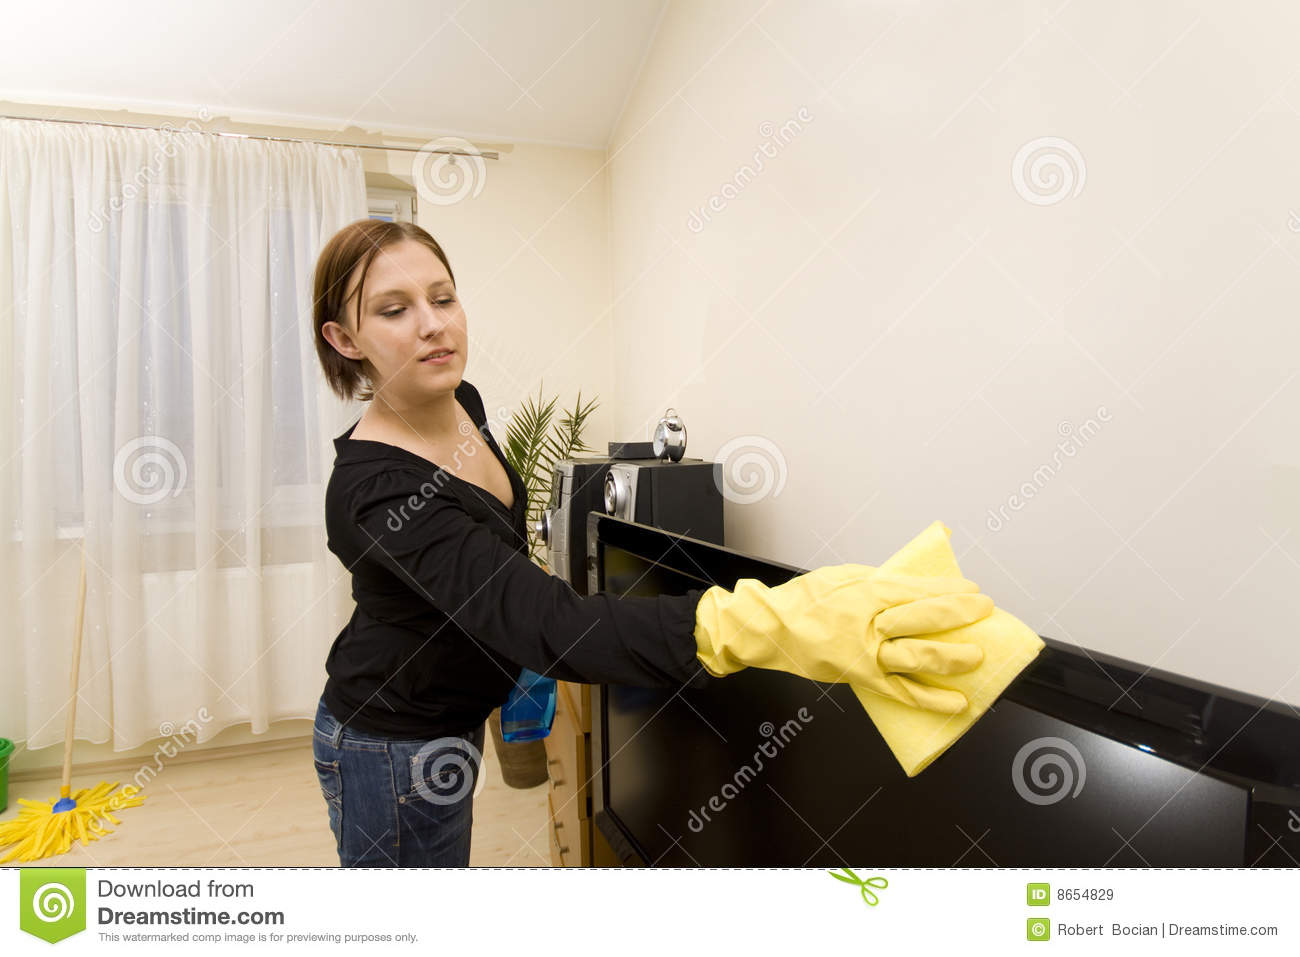 House cleaning royalty free stock images image 8654829 for House cleaning stock photos